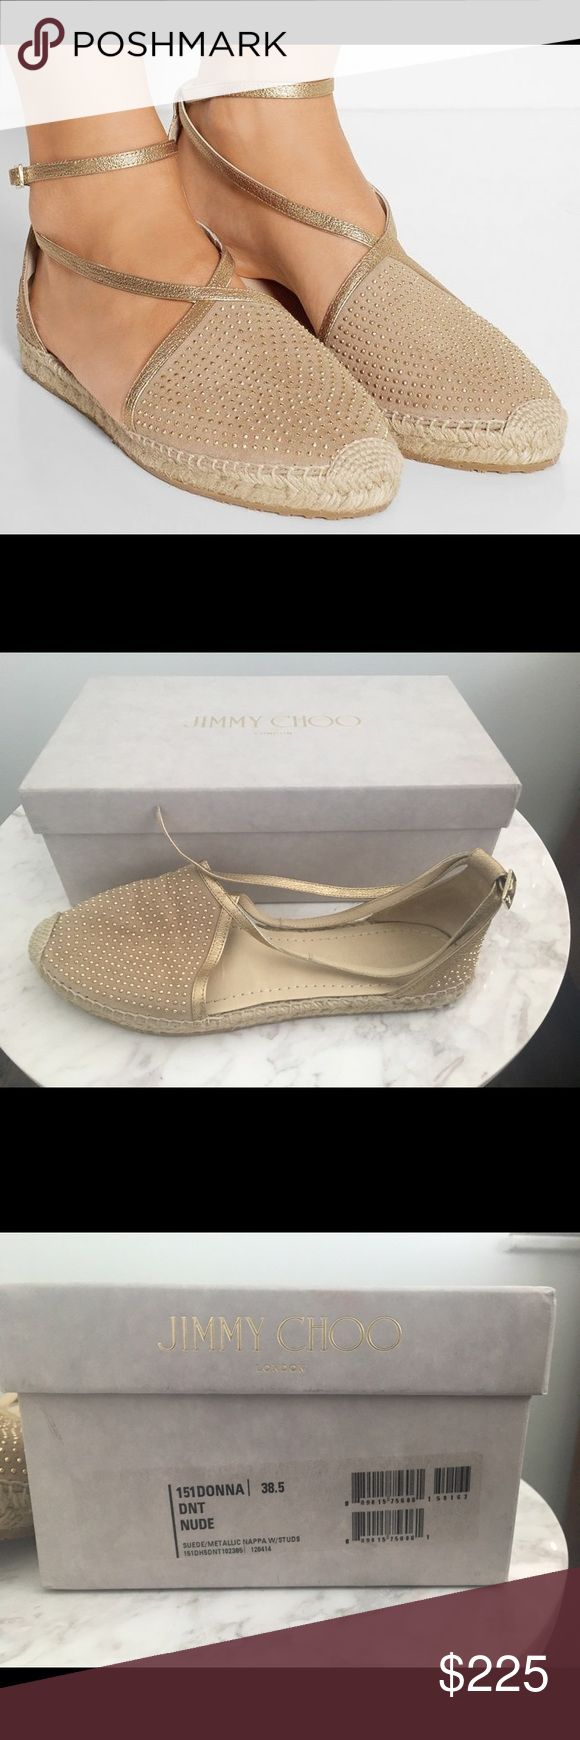 Jimmy Choo Nude espadrilles 38.5 Jimmy Choo Espadrilles -- RETAIL $525.00  Basically New -- Includes Box  Worn Once, No Visible Wear!   Perfect for Resort Season!  A braided jute sole lends breezy bohemian allure to a soft suede espadrille illuminated in shining microstuds. Slender, metallic trim and a wraparound ankle strap perfect the look. Adjustable strap with buckle closure. Suede and leather upper/leather lining/leather and jute sole. By Jimmy Choo; made in Spain. Jimmy Choo Shoes…